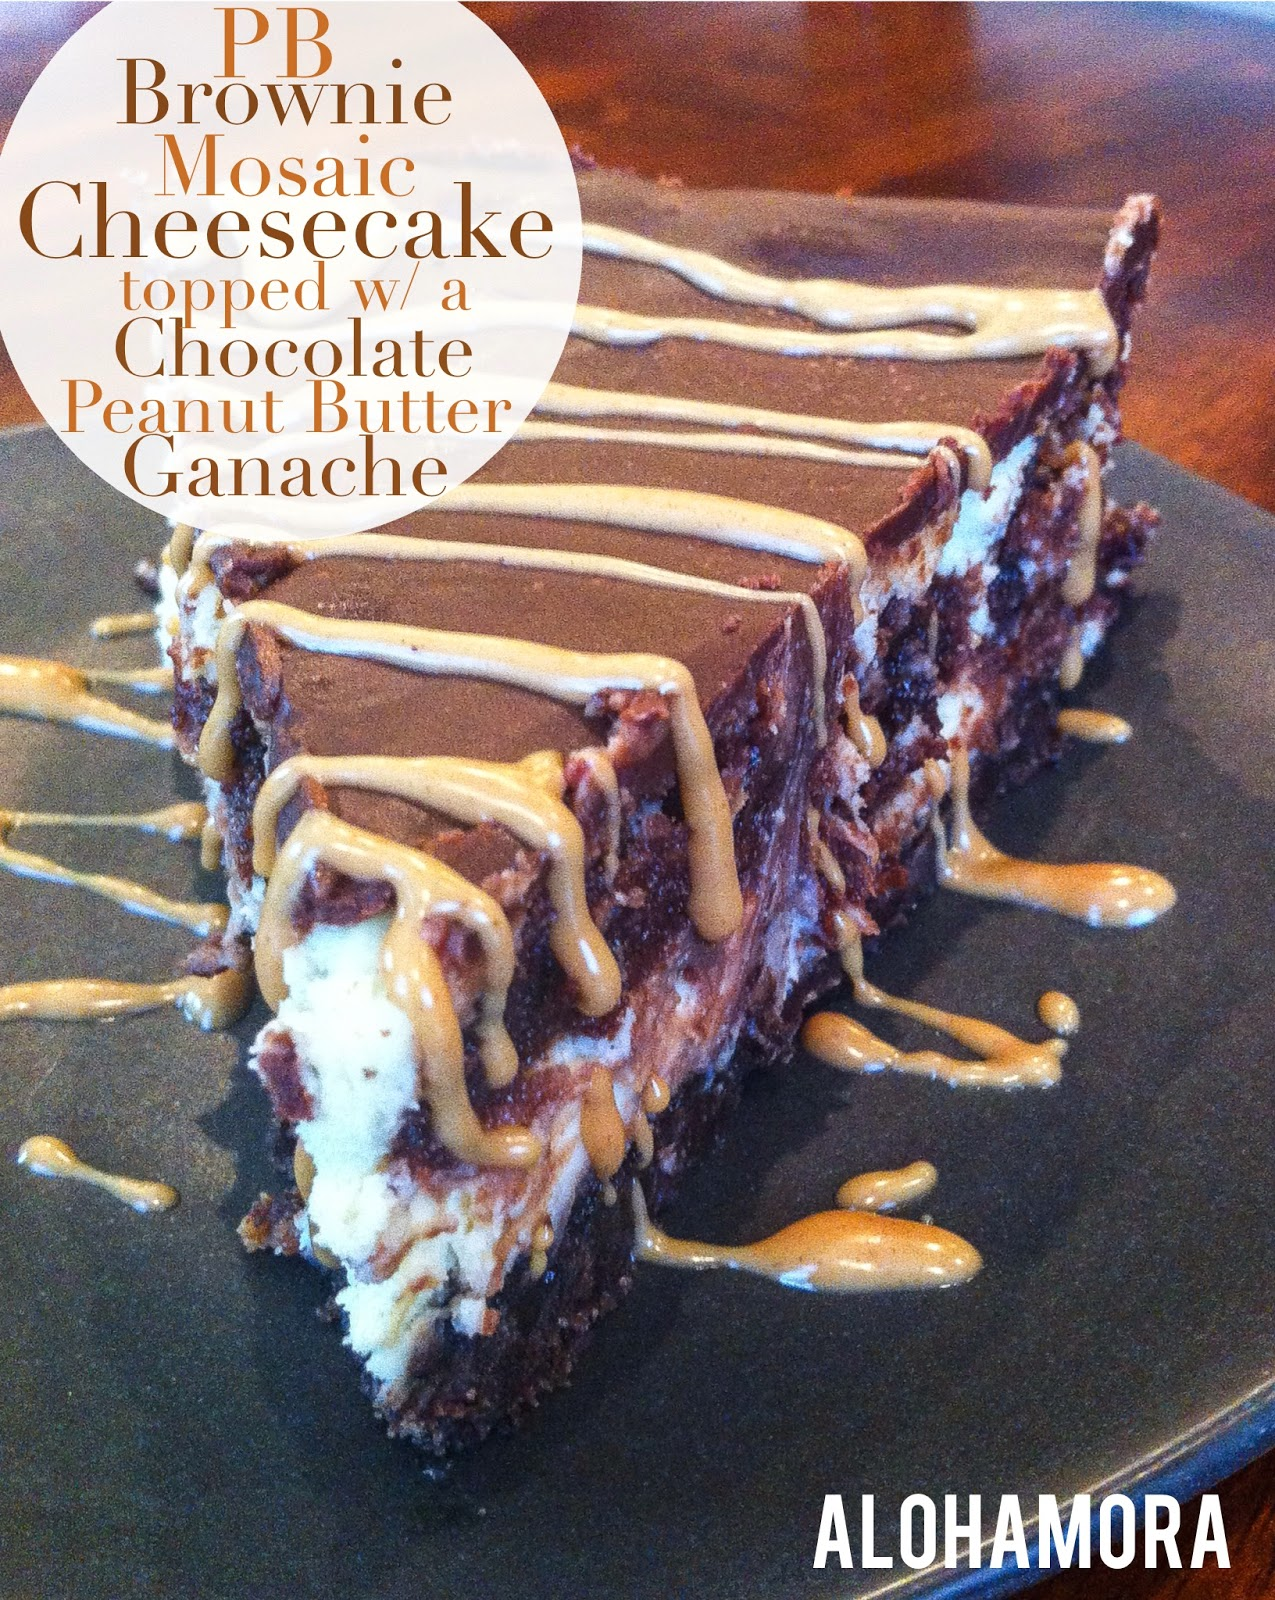 Peanut Butter Brownie Mosaic Cheesecake with a Chocolate Peanut Butter Ganache Glaze.  AMAZINGLY delicious! Alohamora Open a Book http://alohamoraopenabook.blogspot.com/